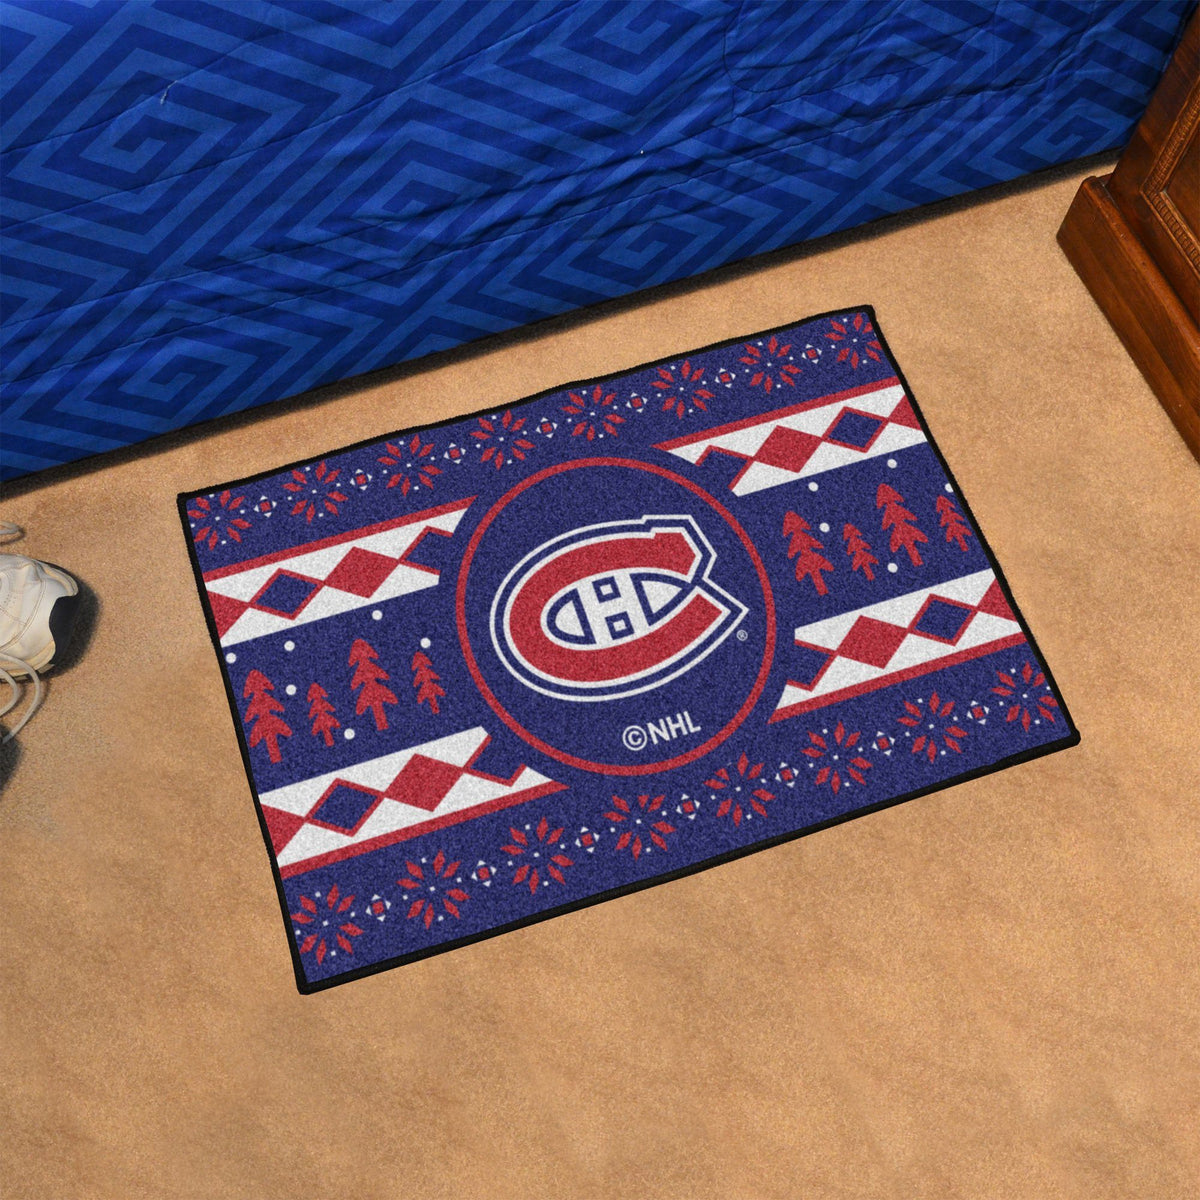 NHL - Holiday Sweater Starter Mat NHL Mats, Rectangular Mats, Holiday Sweater Starter Mat, NHL, Home Fan Mats Montreal Canadiens